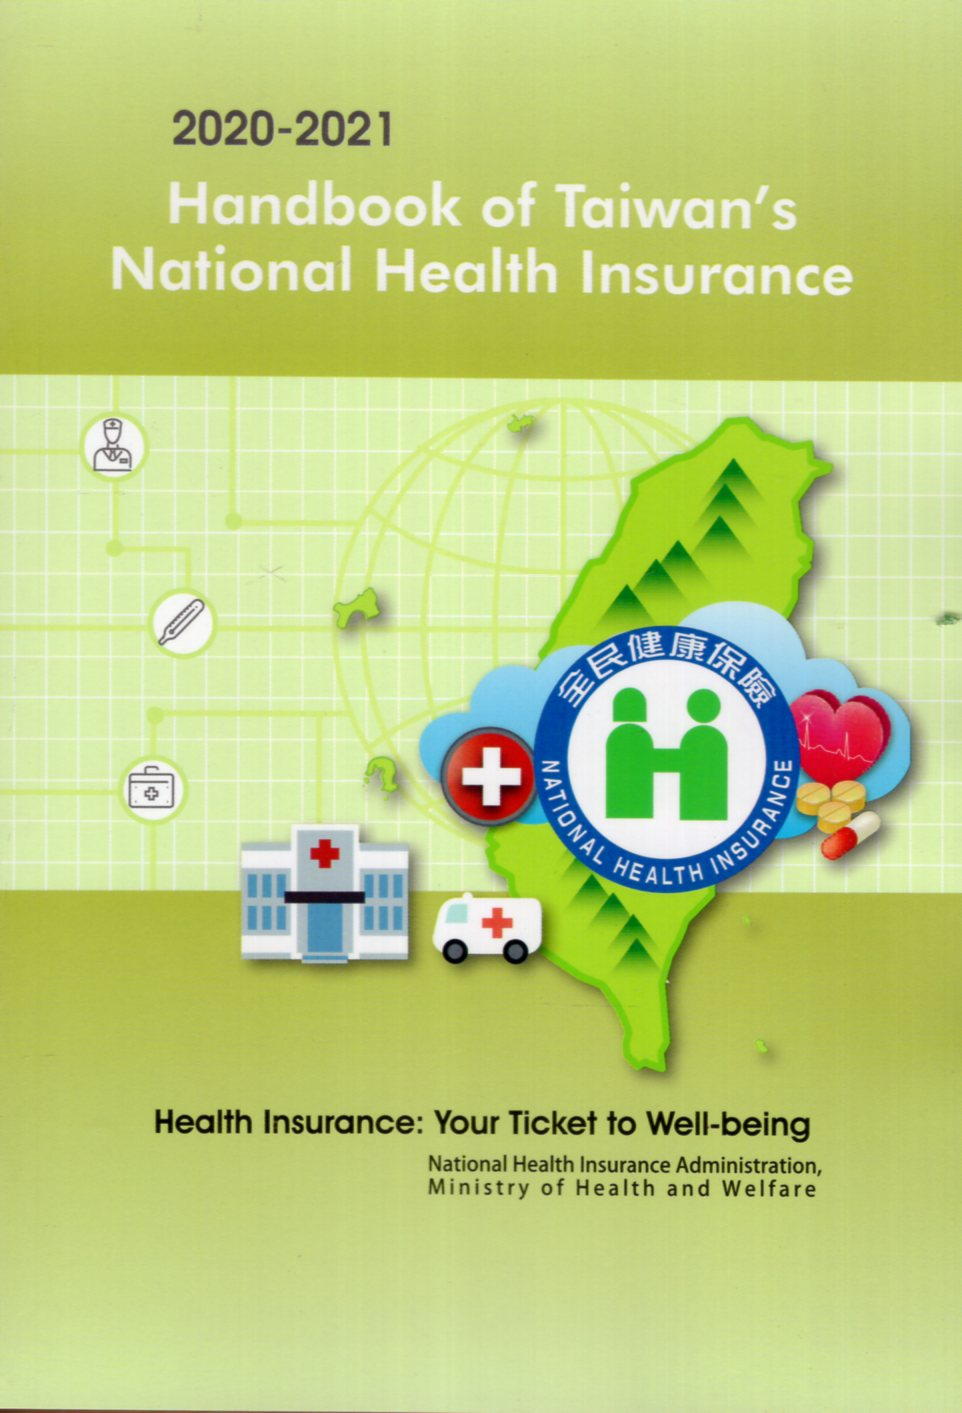 2020-2021 Handbook of Taiwan's National Health Insurance